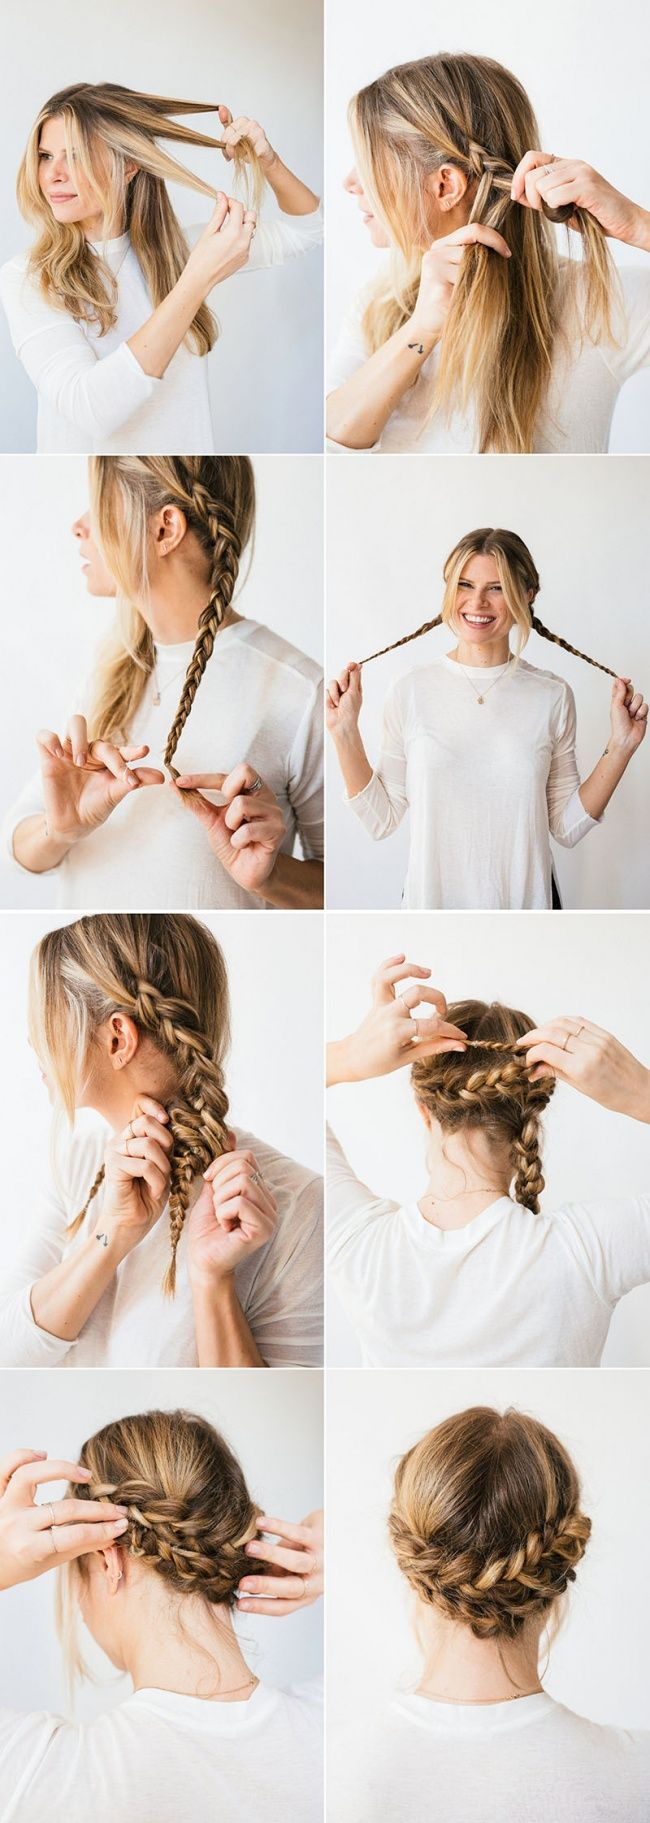 15 summer hairstyles you can create in 5 minutes